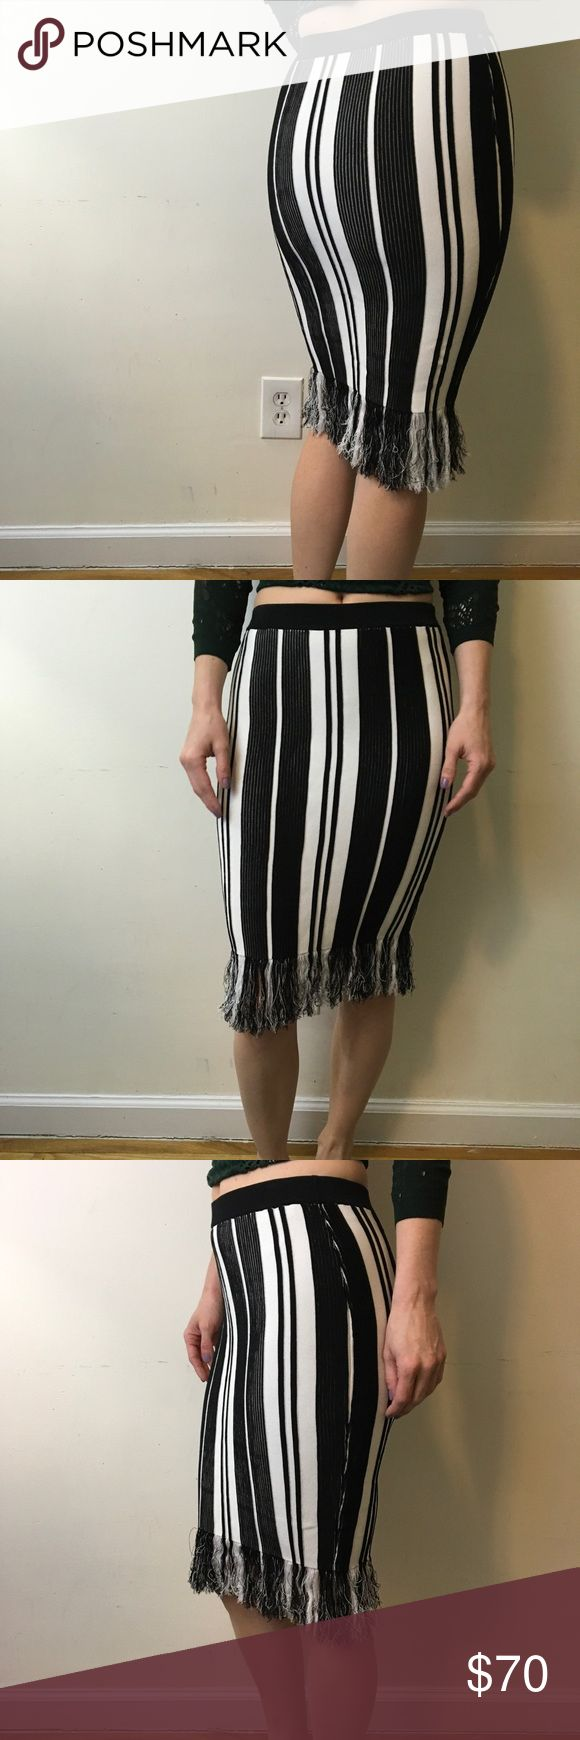 & Other Stories Black & White Striped Tassel Skirt & Other Stories Skirt in black and white with rope tassel as the end - stretchy and is very form fitting! Sexy to the max!! & Other Stories  Skirts